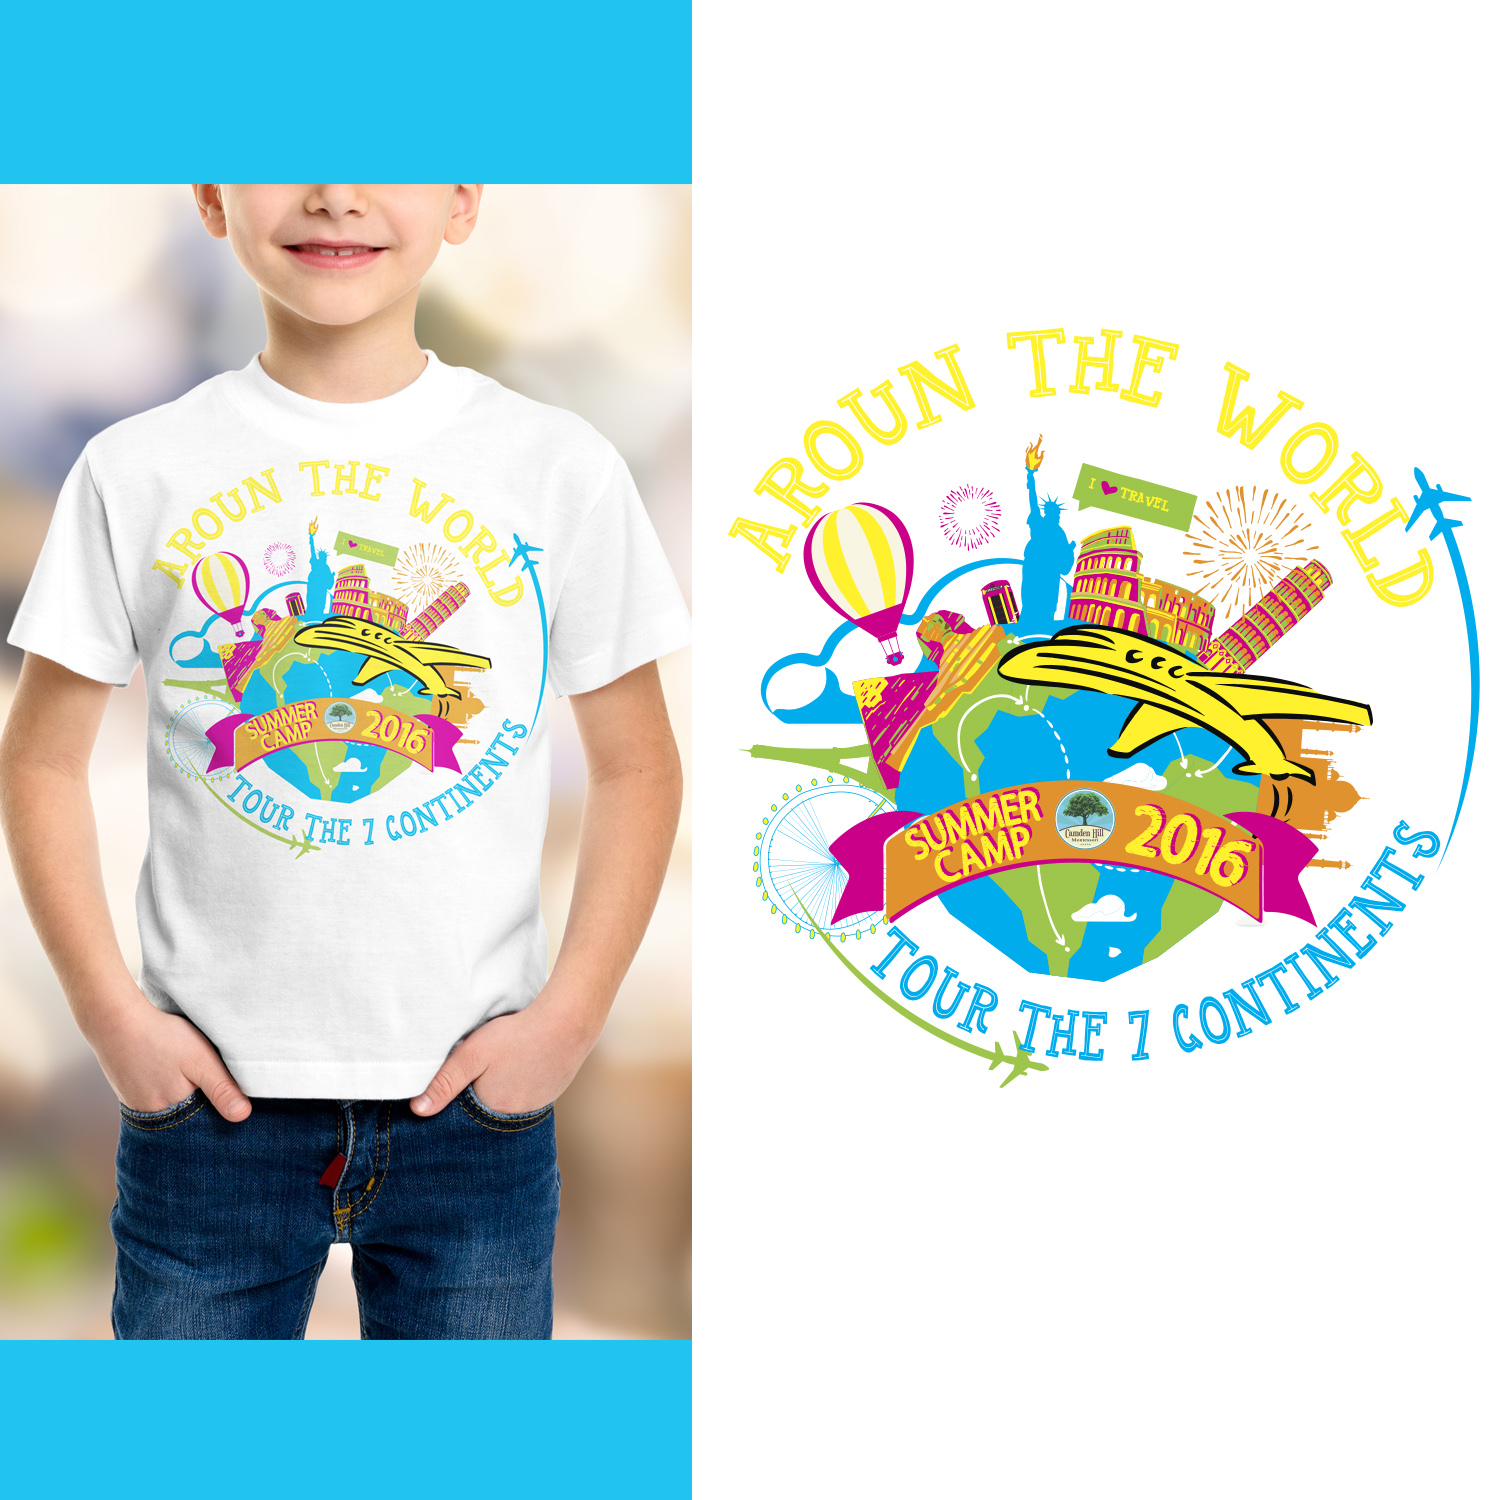 Playful, Personable, Preschool T-shirt Design for a Company ...